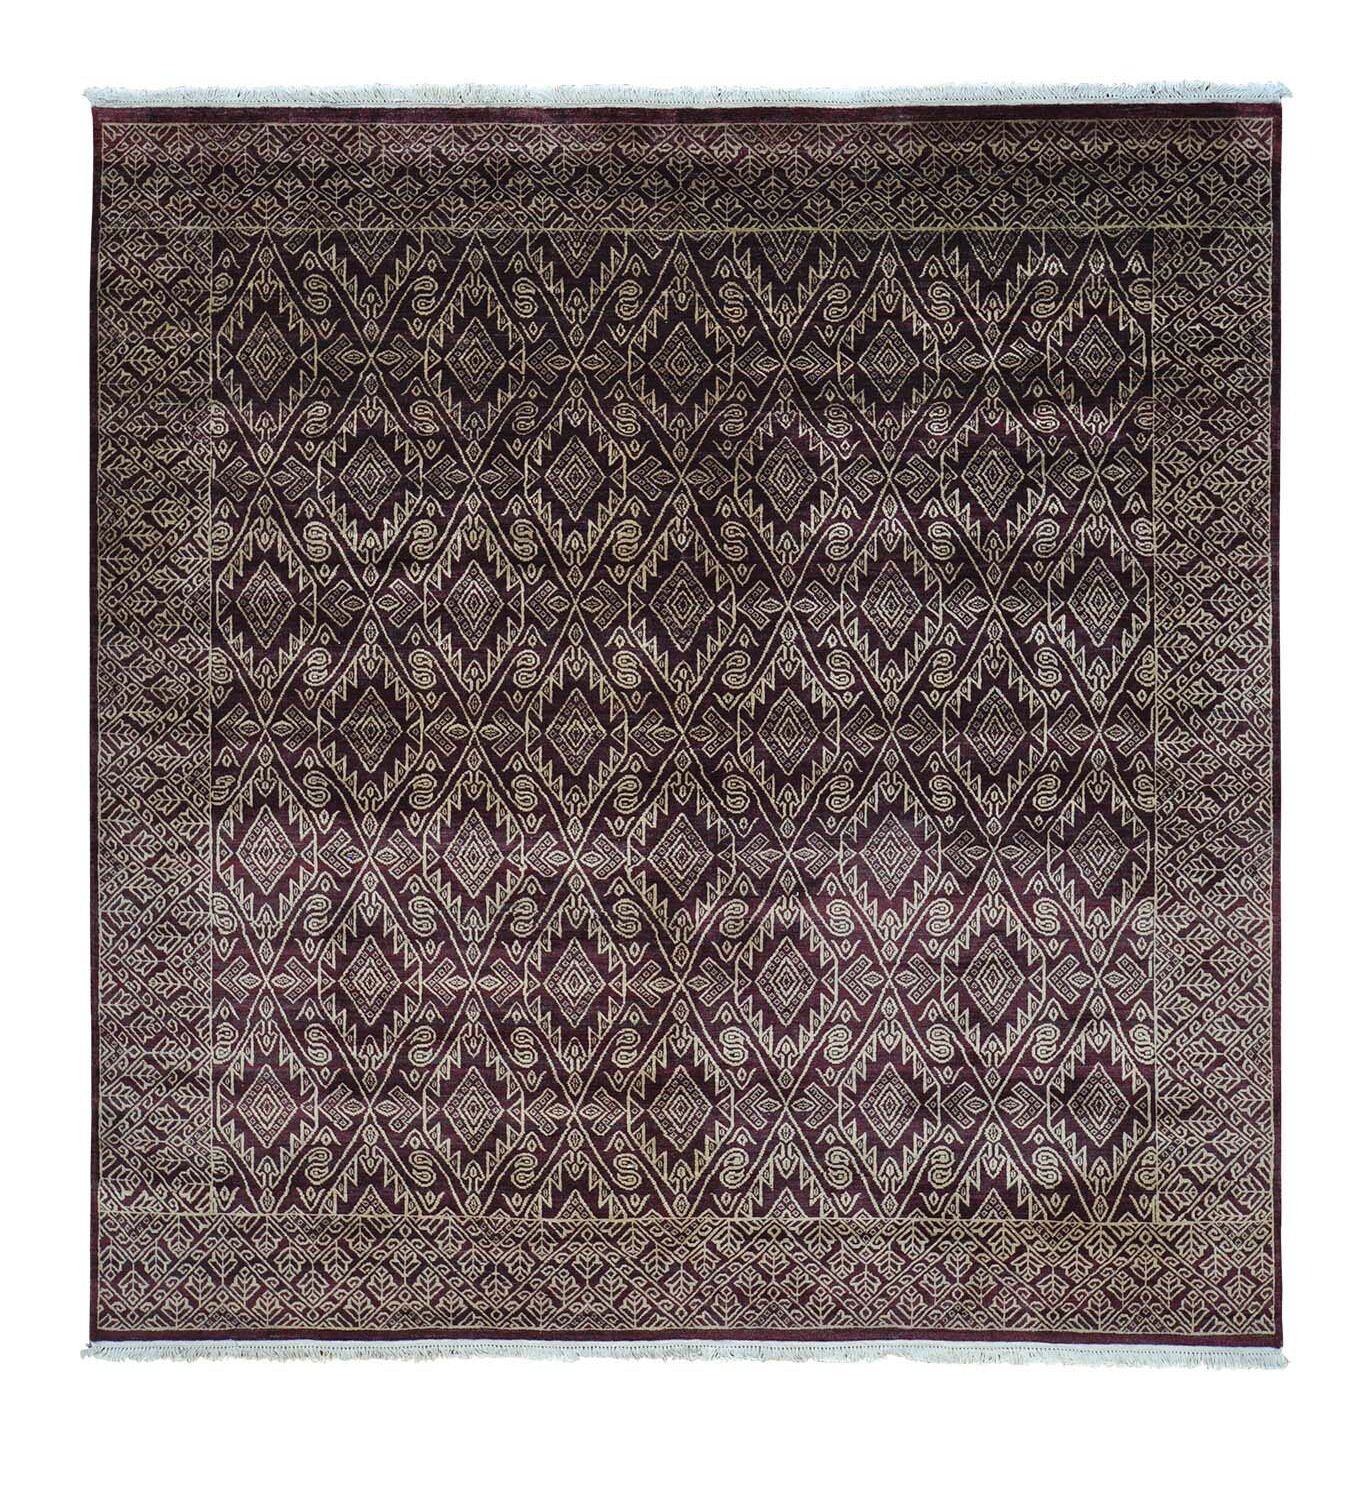 One-of-a-Kind Tone on Tone Hand-Knotted Burgundy/Beige Area Rug